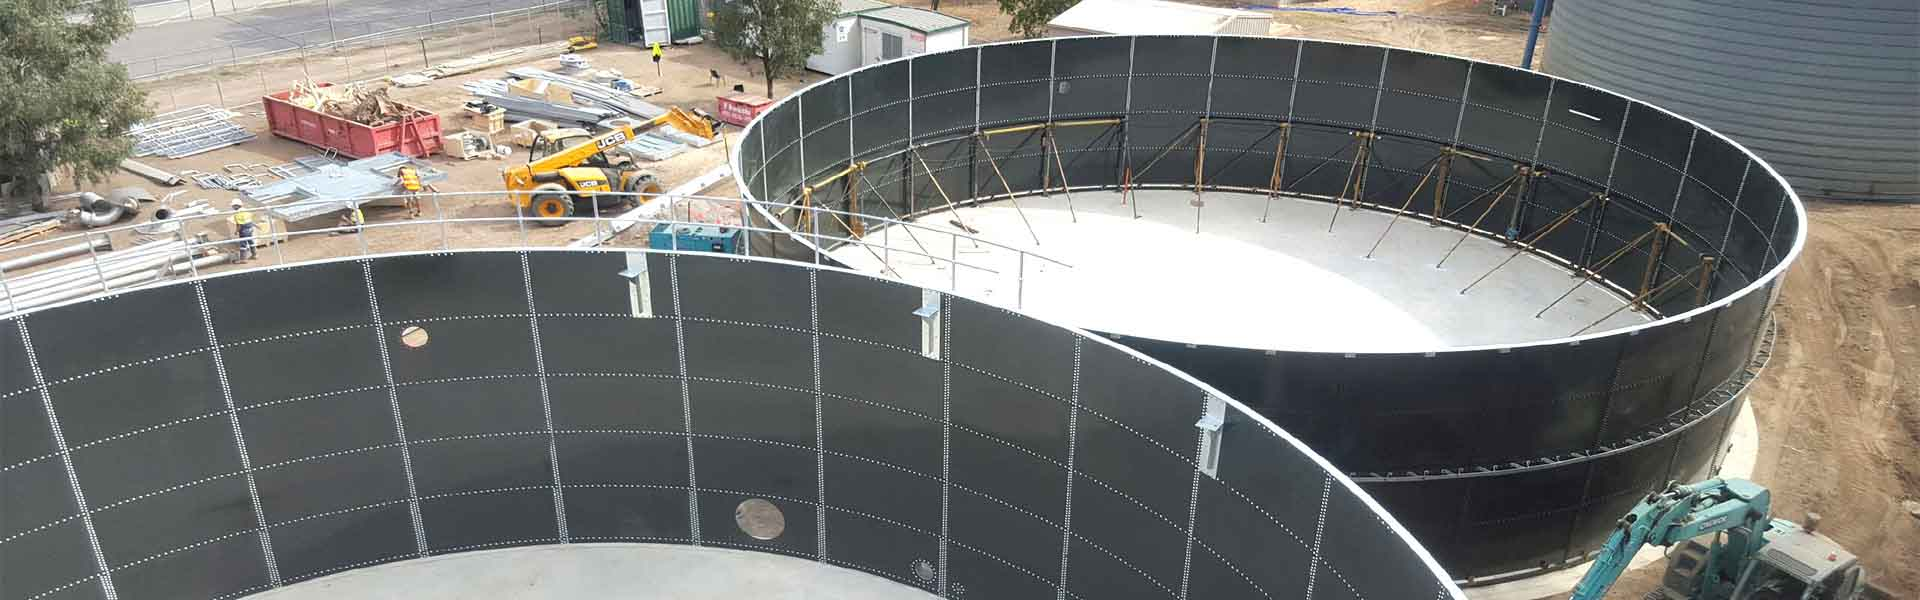 industrial wastewater tank